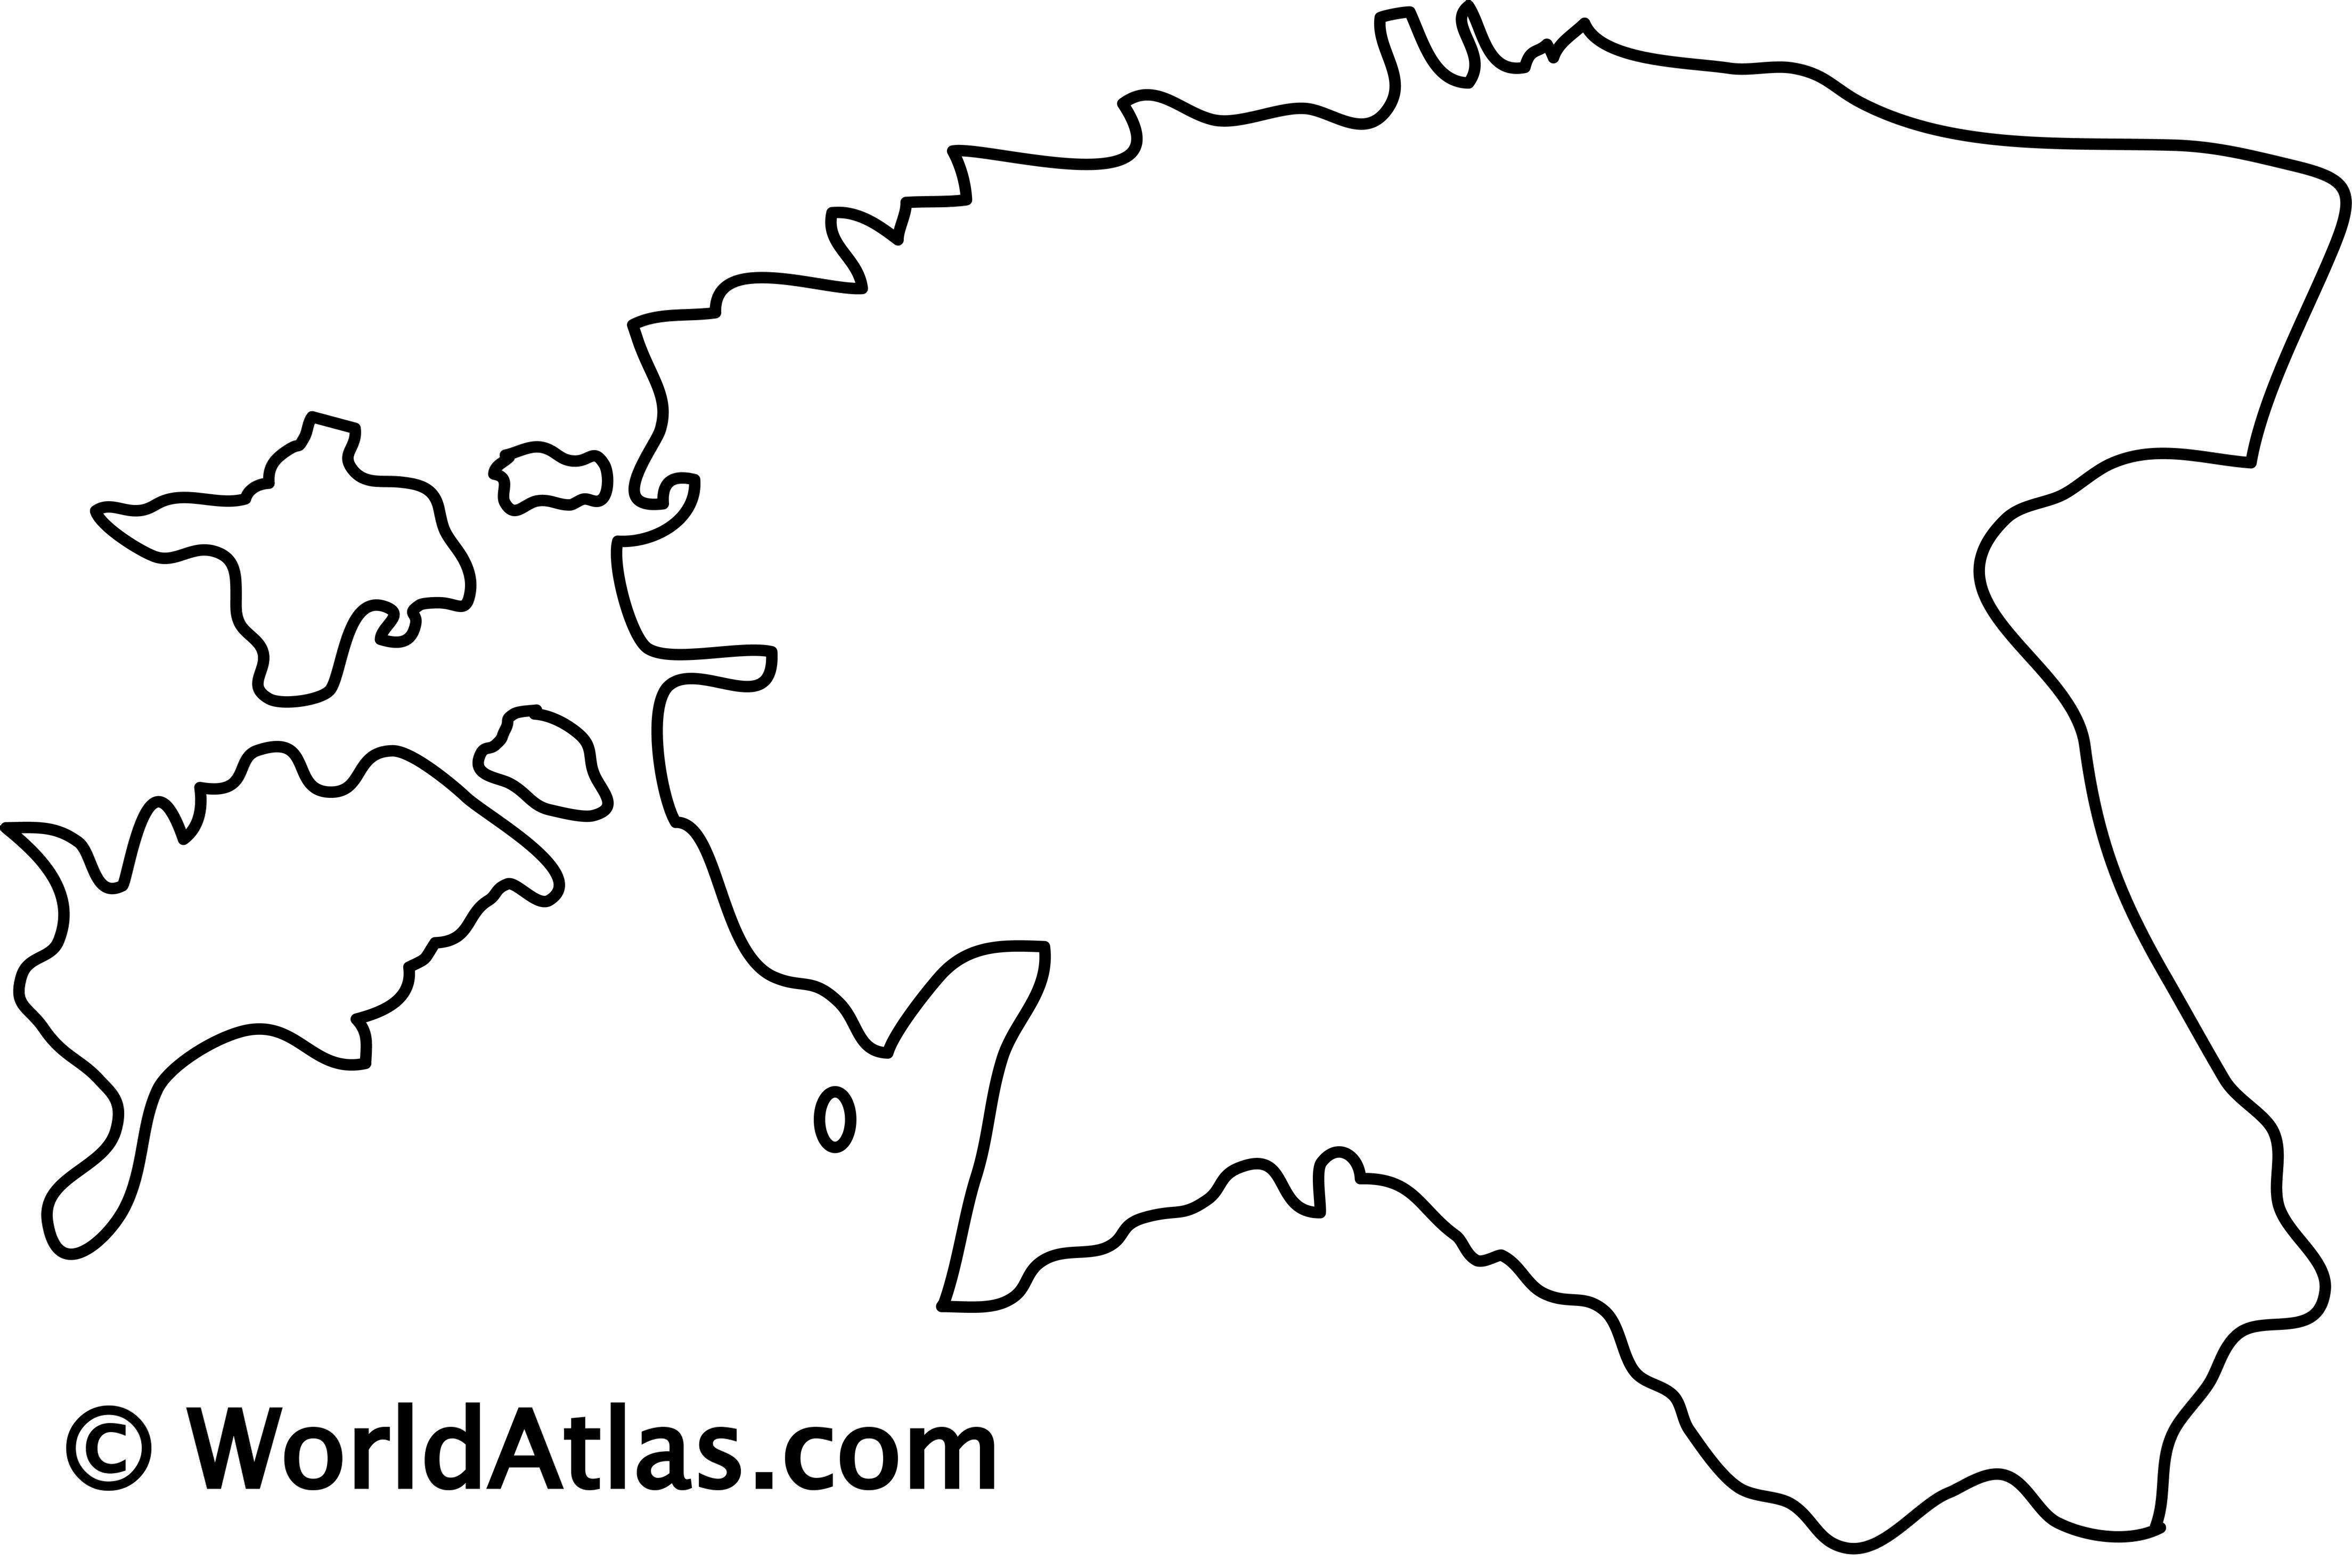 Blank outline map of Estonia